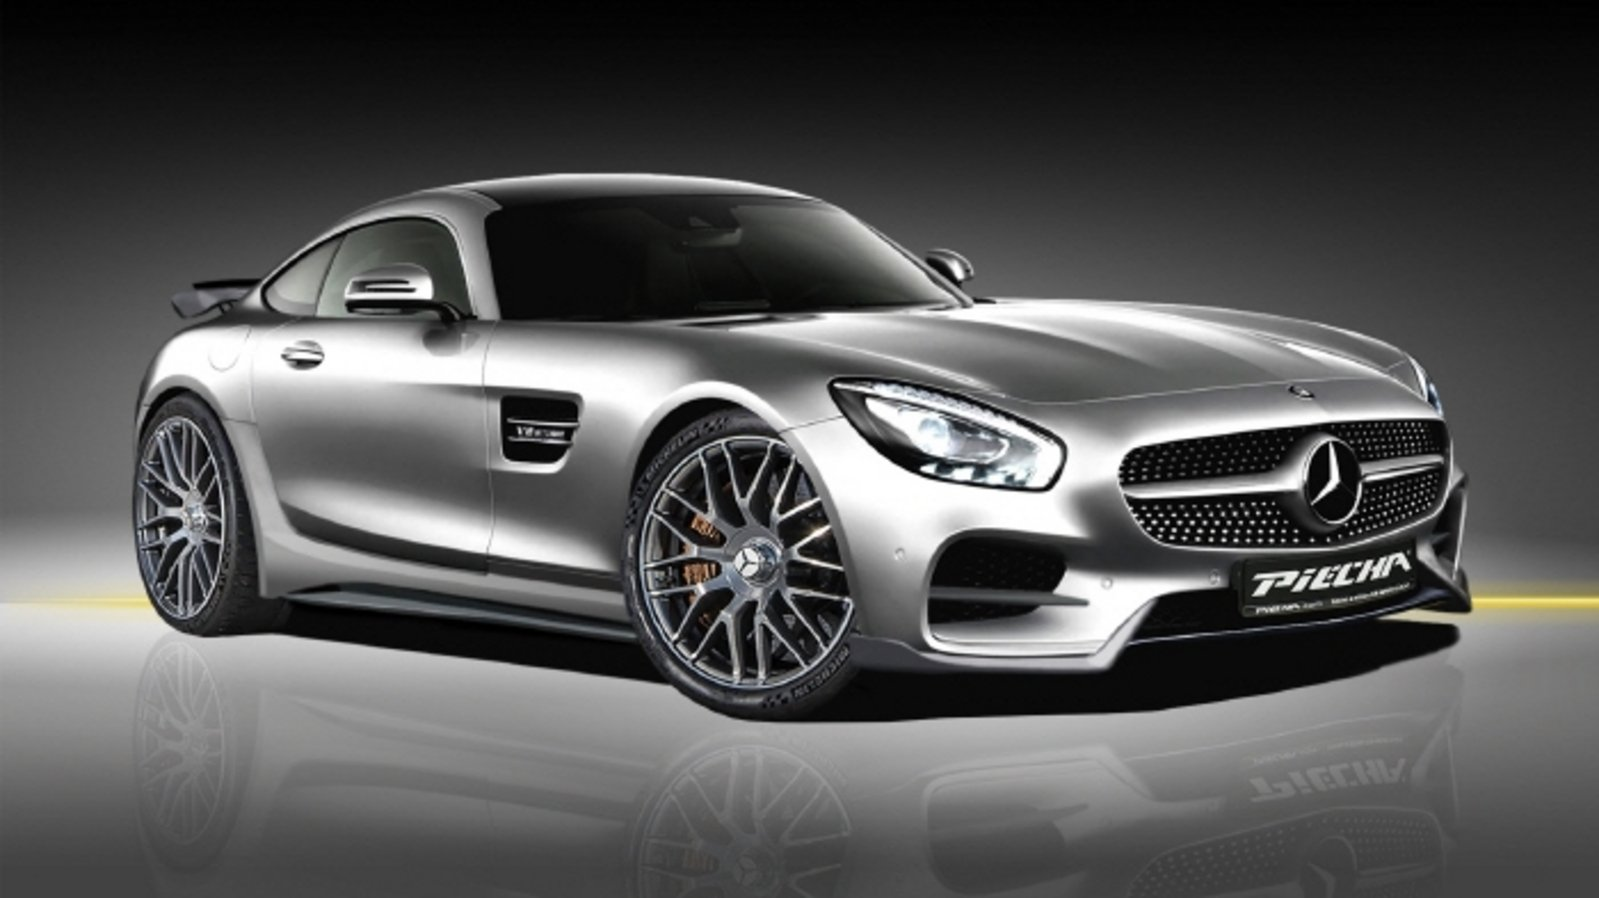 2016 mercedes amg gt s rsr by piecha design review top speed. Black Bedroom Furniture Sets. Home Design Ideas